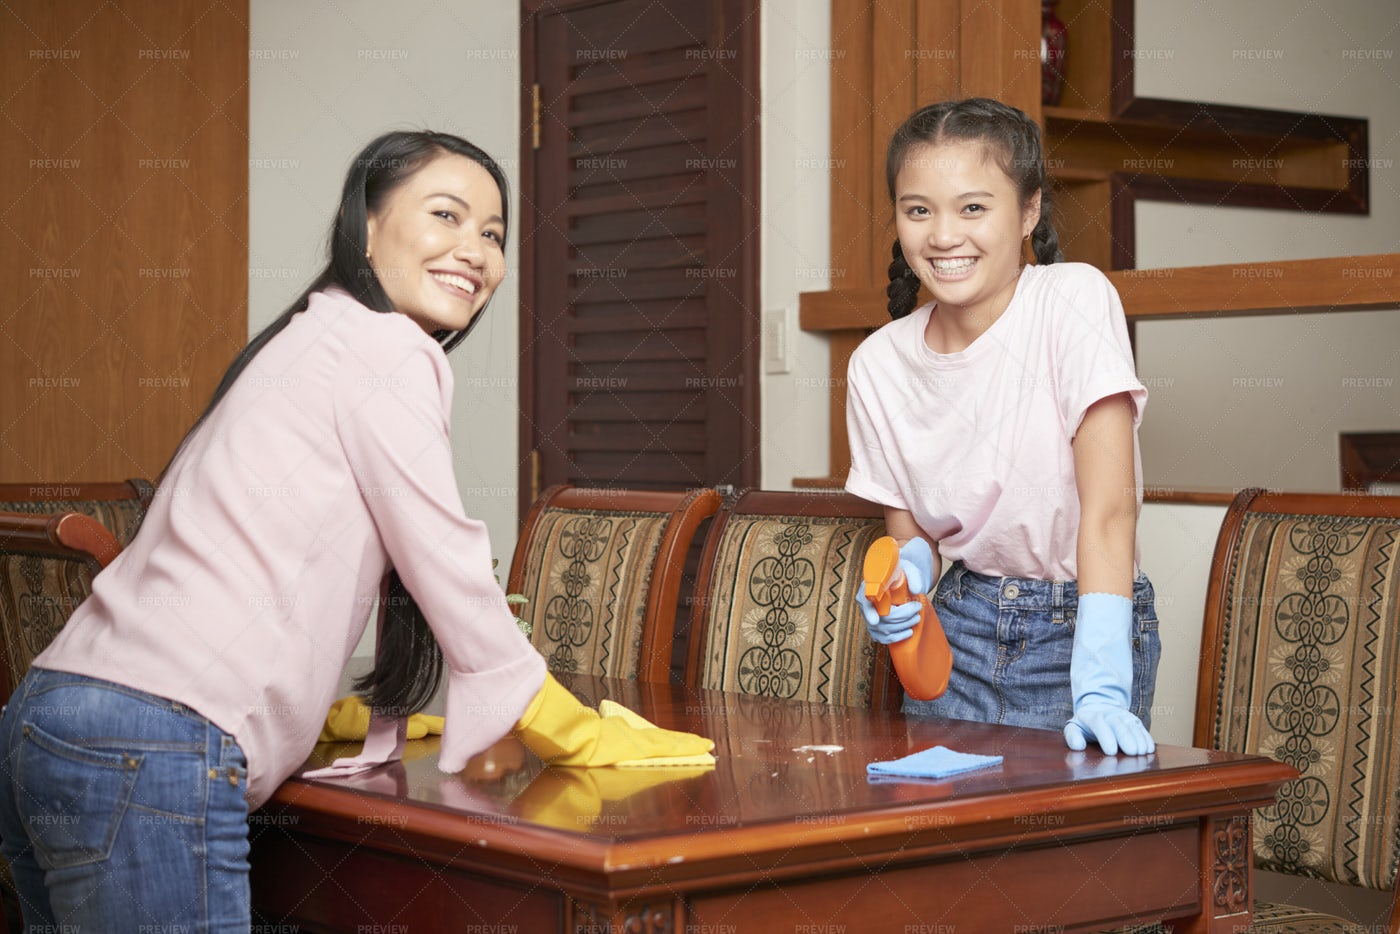 Housecleaning At Home: Stock Photos